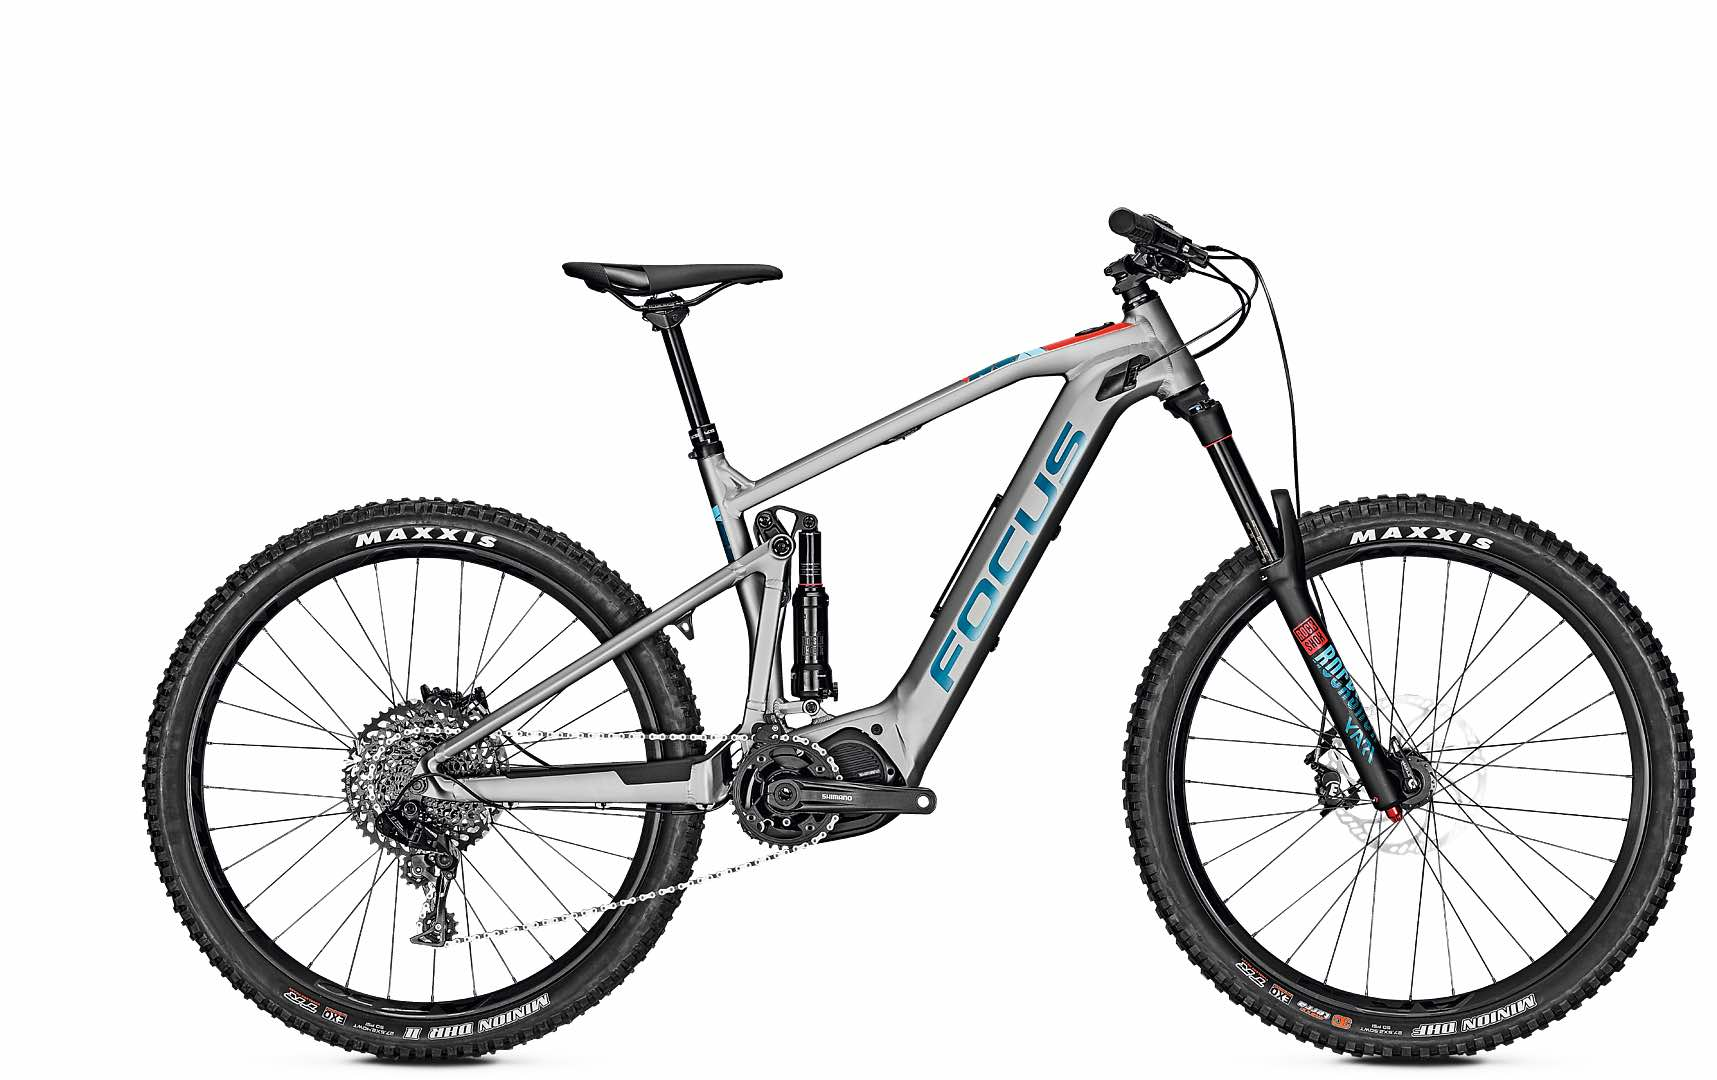 Focus Sam2 6 7 Enduro eMTB - last one